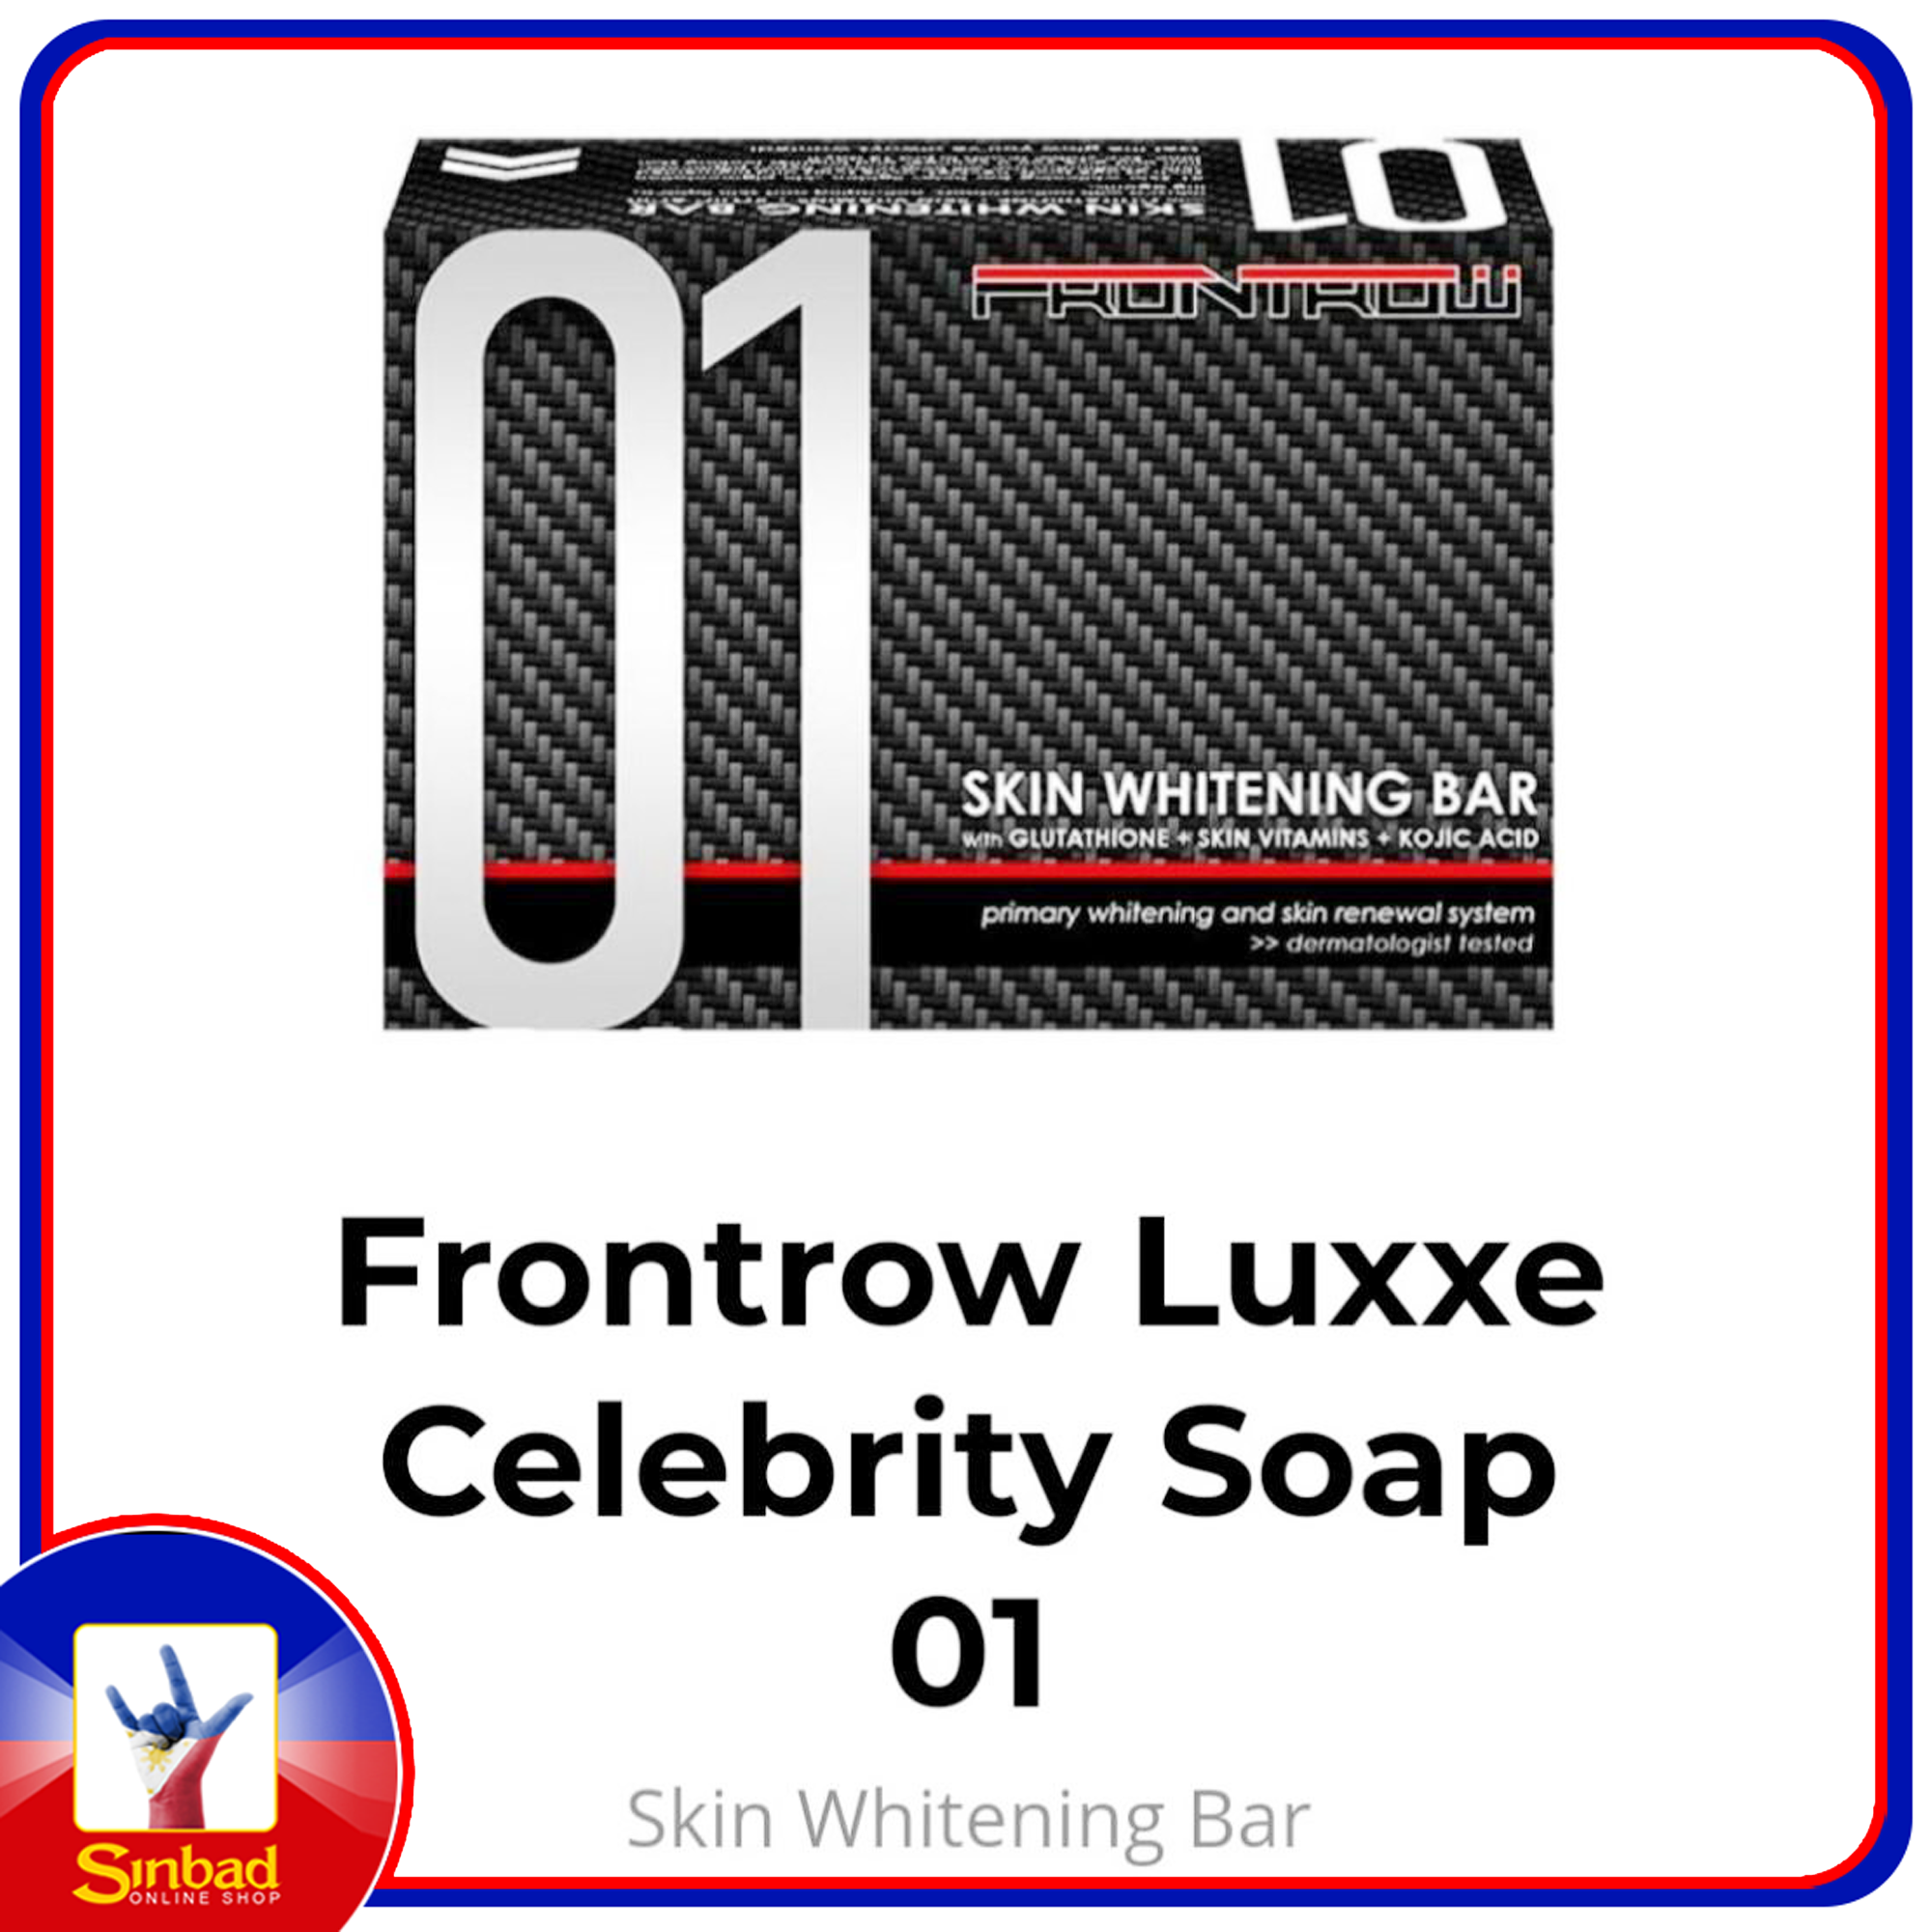 Frontrow Luxxe Skin Whitening With Glutathione + Skin Vitamin + Kojic Acid Soap No. 1